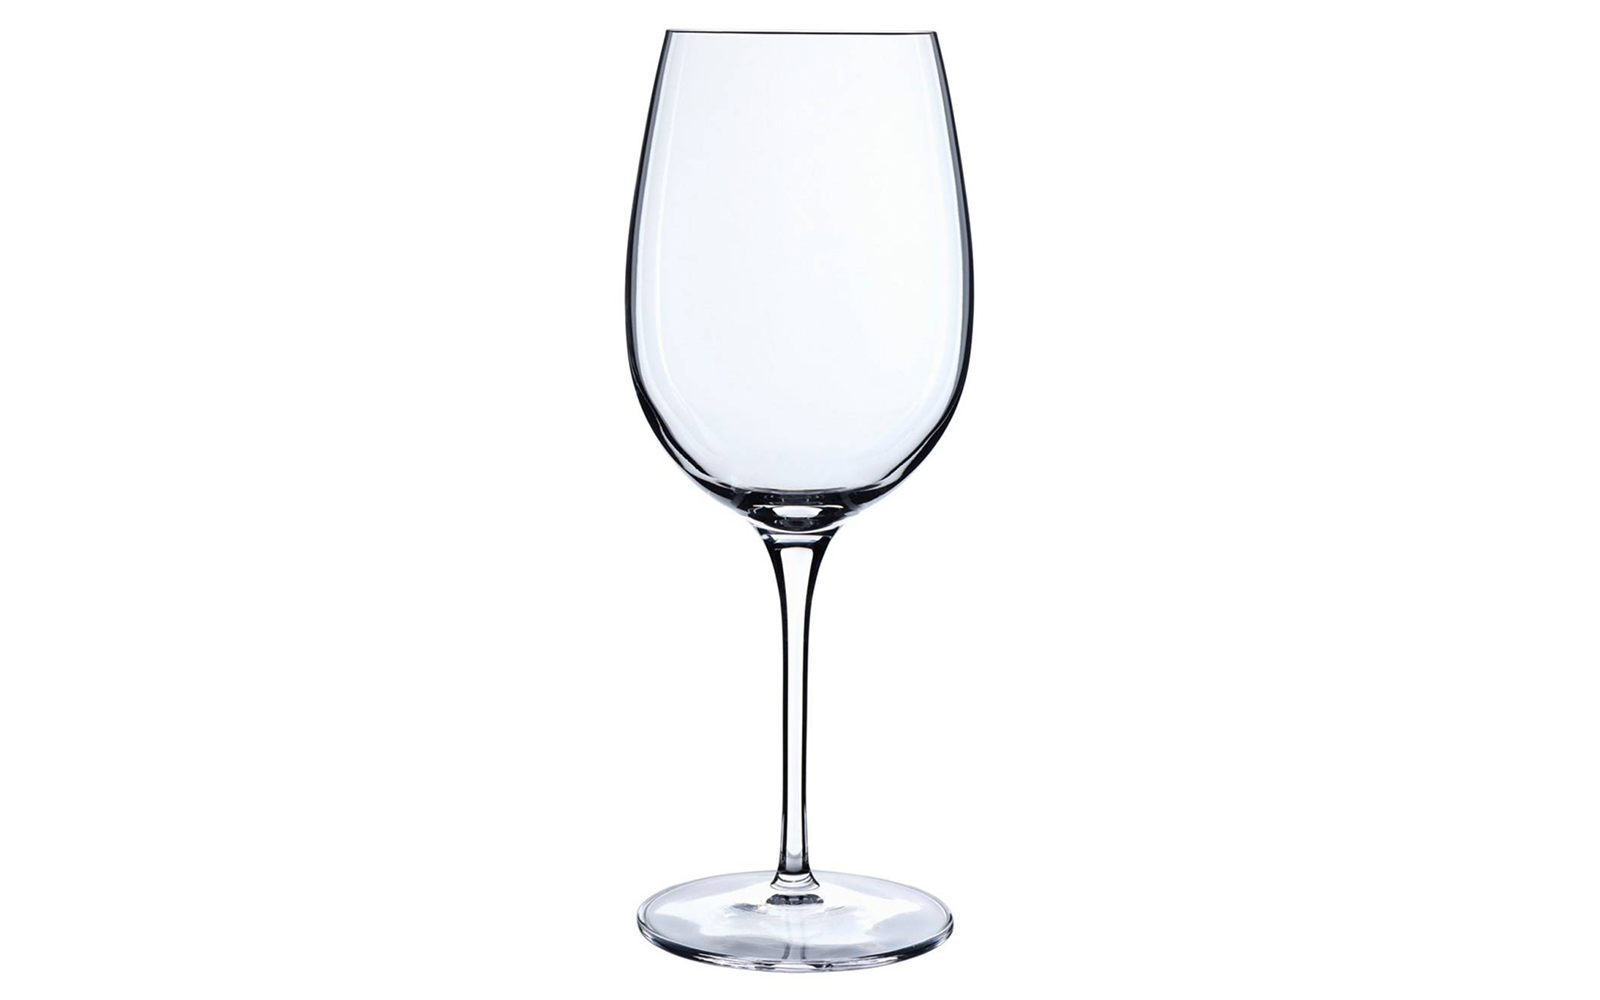 Luigi Bormioli 'Crescendo' Bordeaux Glasses